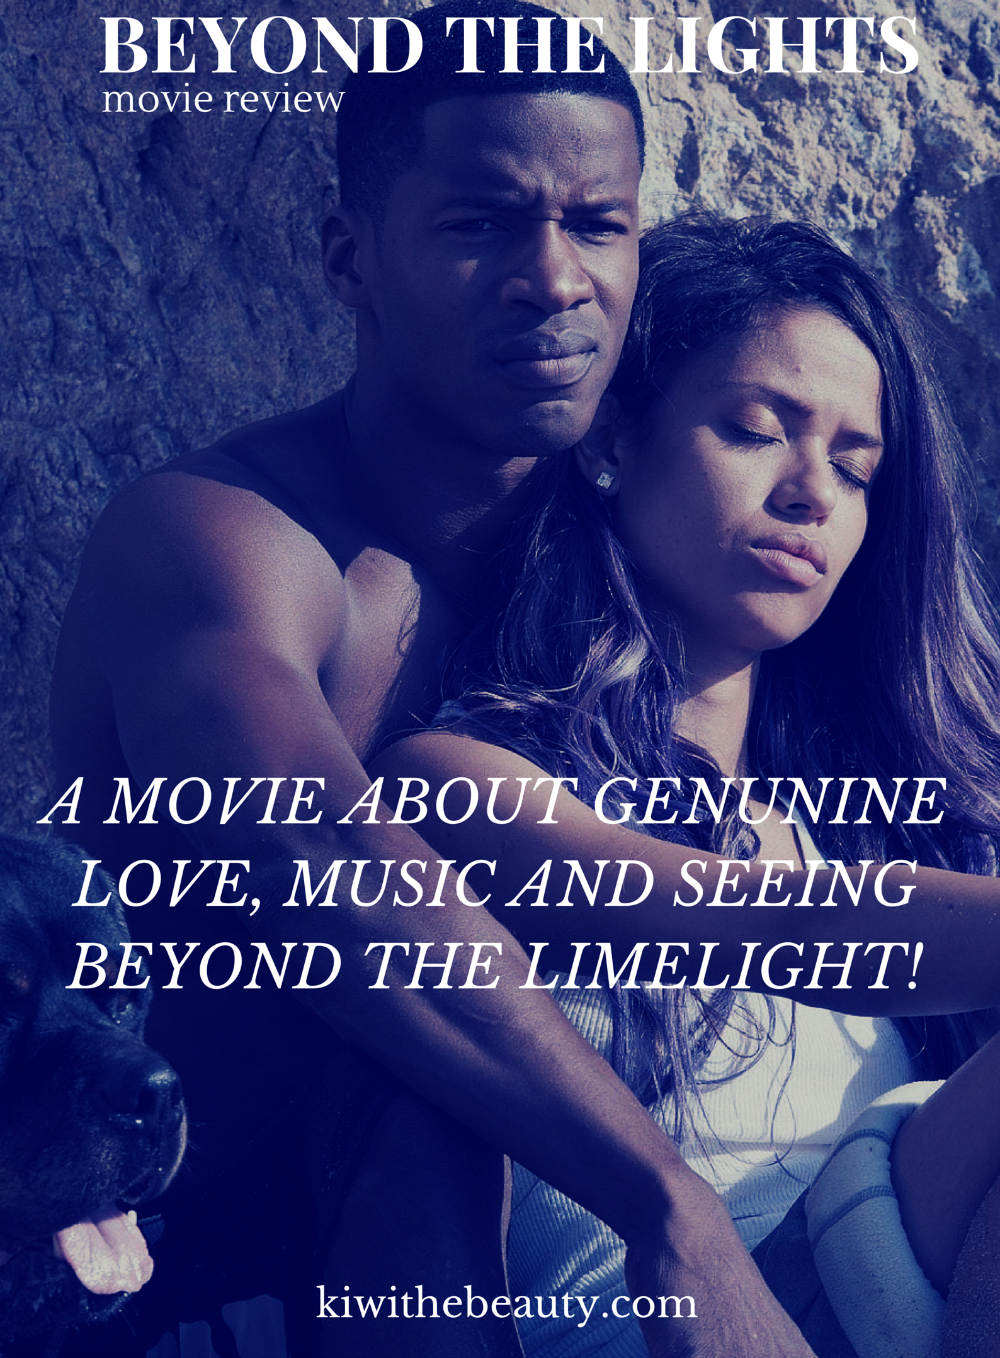 Beyond-the-Lights-movie-review-kiwi-the-beauty